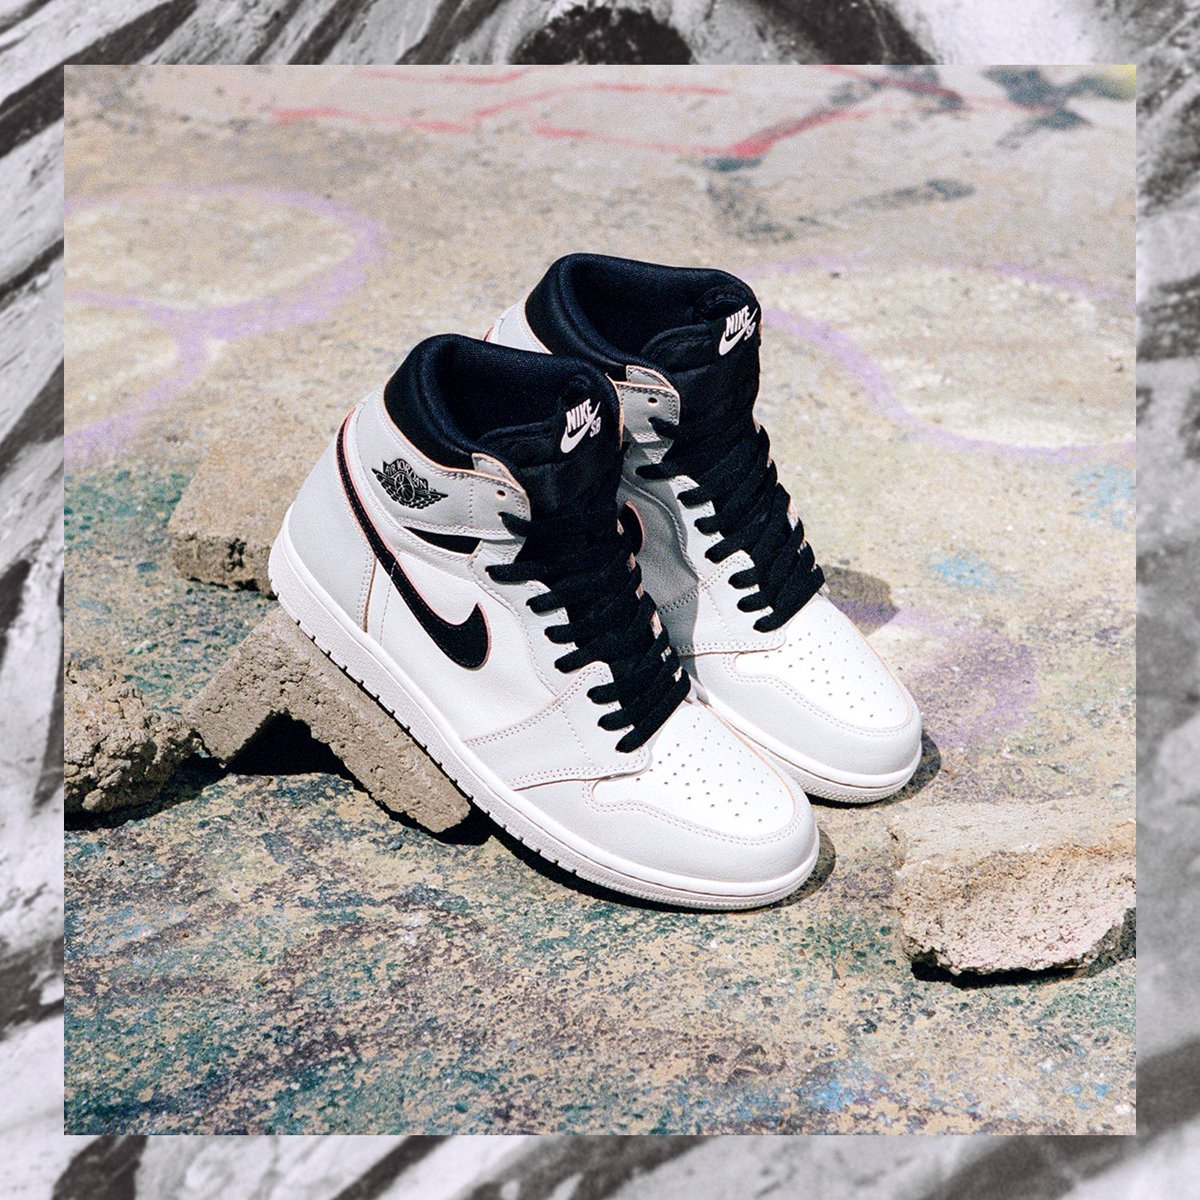 ddf3de77f7619 The shoe pays homage to the original Air Jordan 1 that found its way into  skateboard culture in the mid 1980 s.